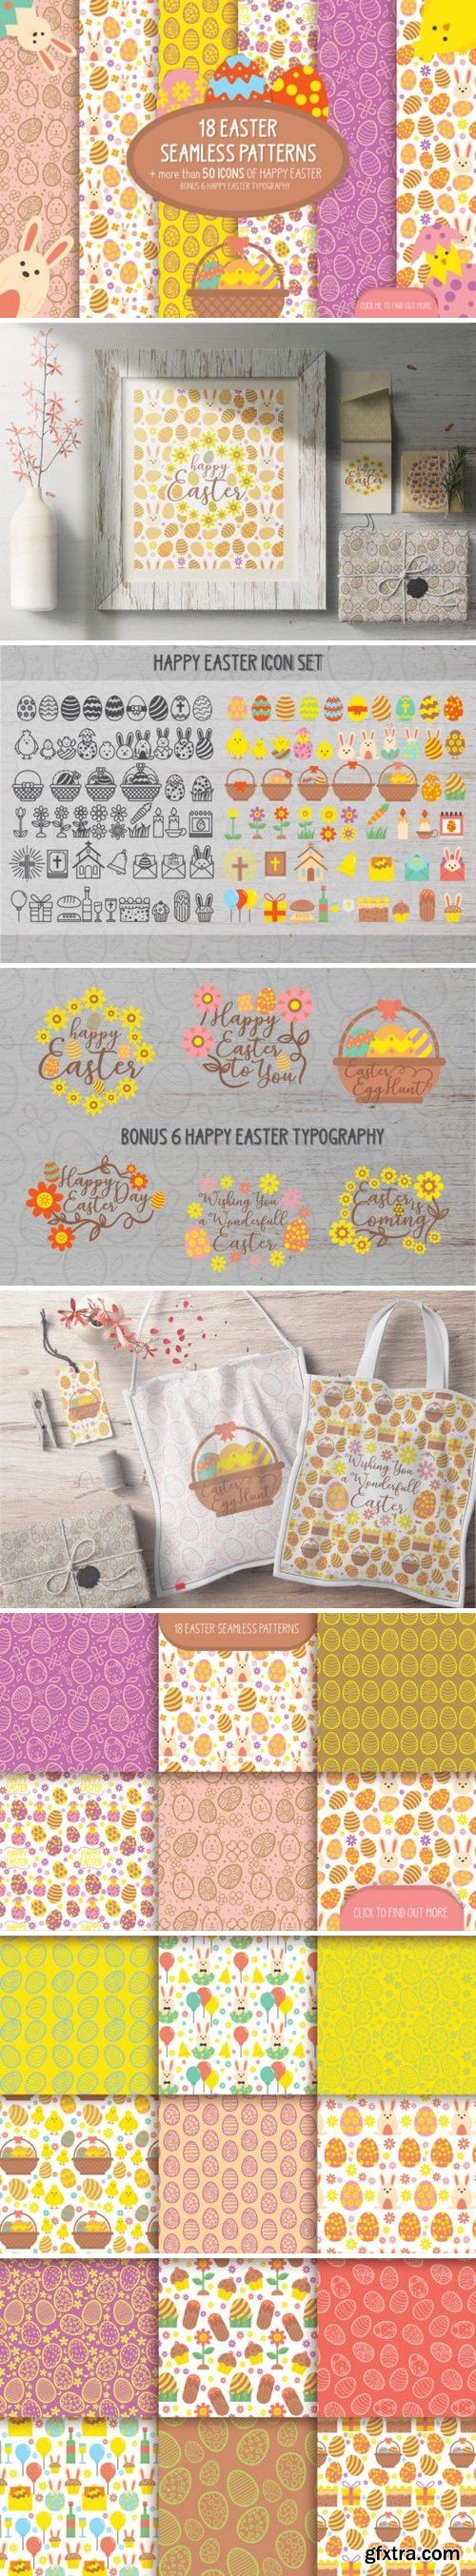 CM - 18 Easter seamless patterns & icons 2369644